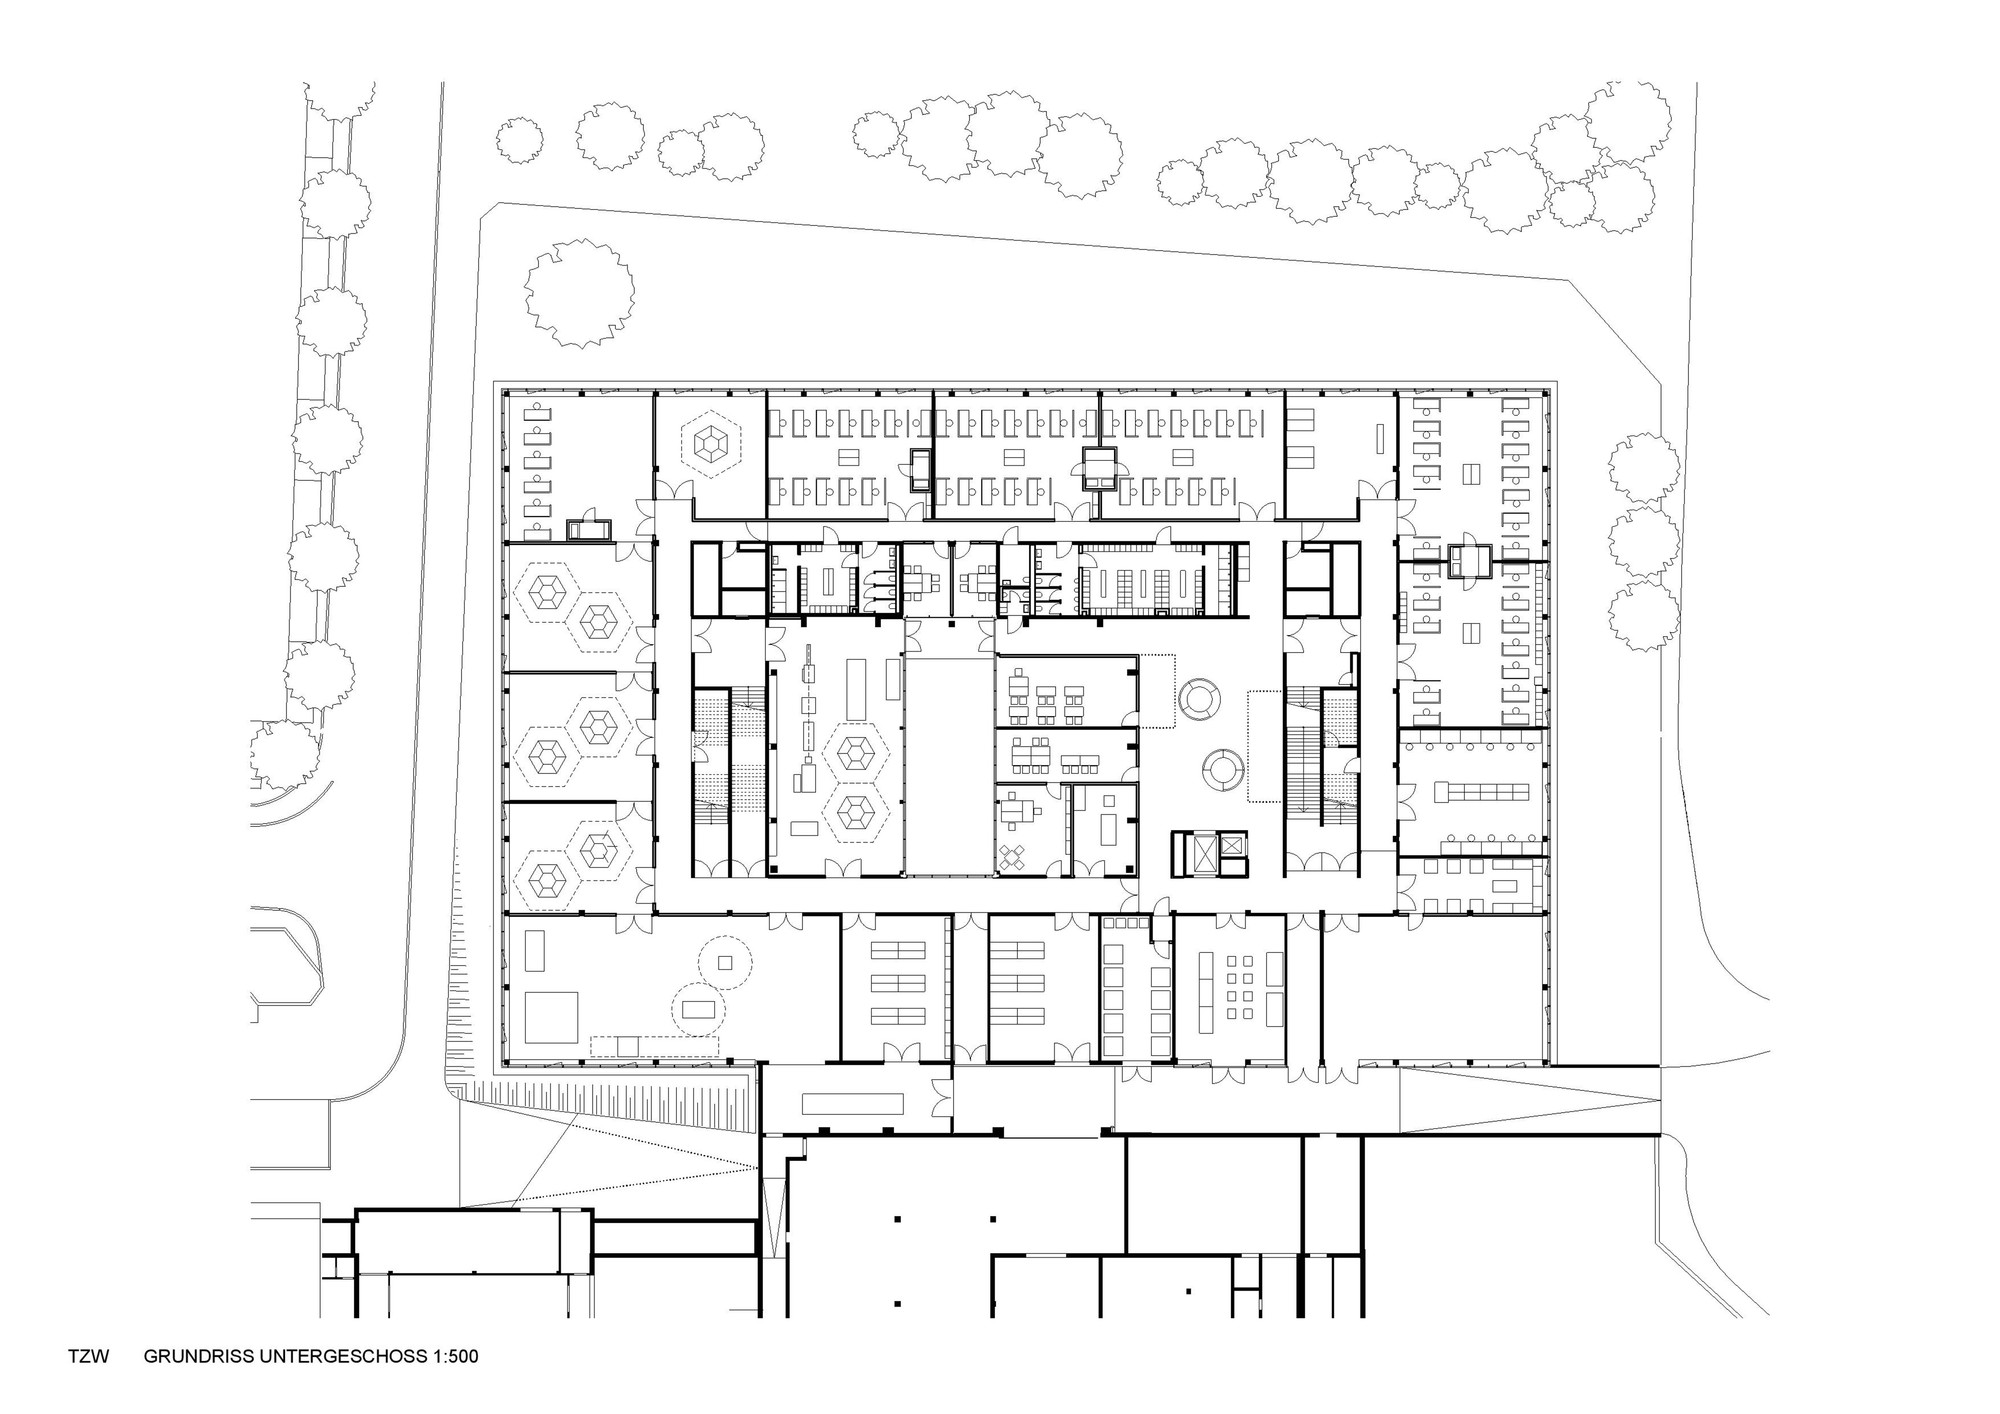 Chemistry Building Of University Of Washington Floor Plans